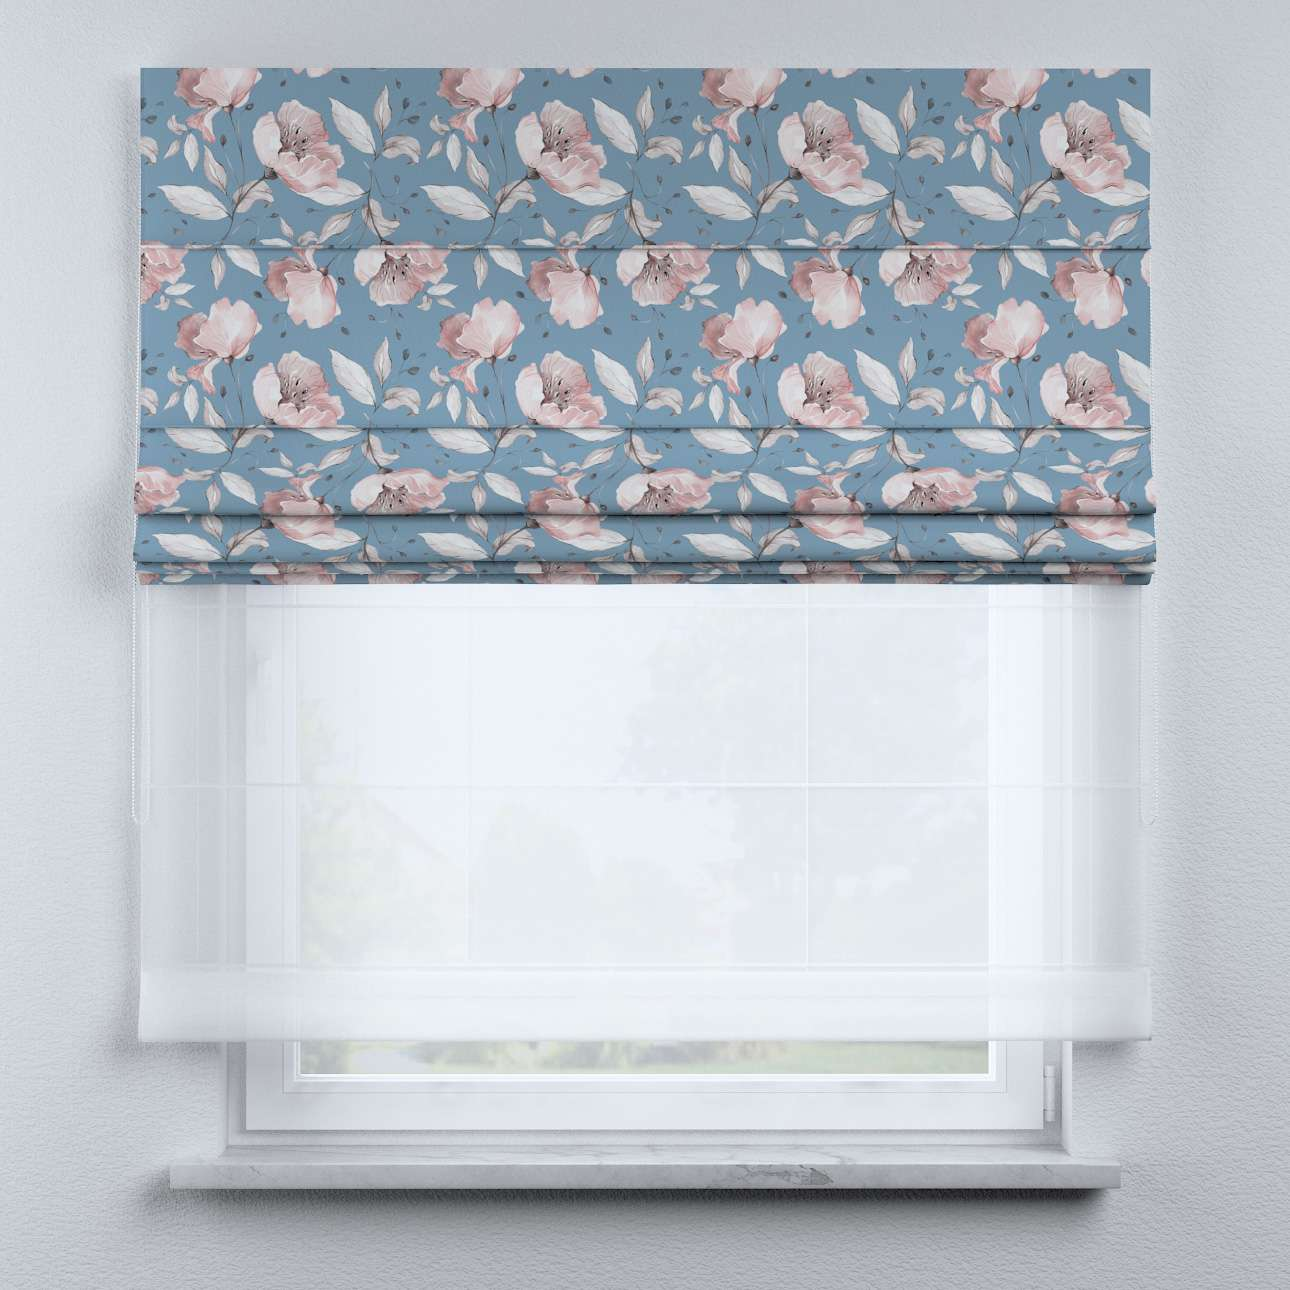 Voile and fabric roman blind (DUO II) in collection Magic Collection, fabric: 500-18